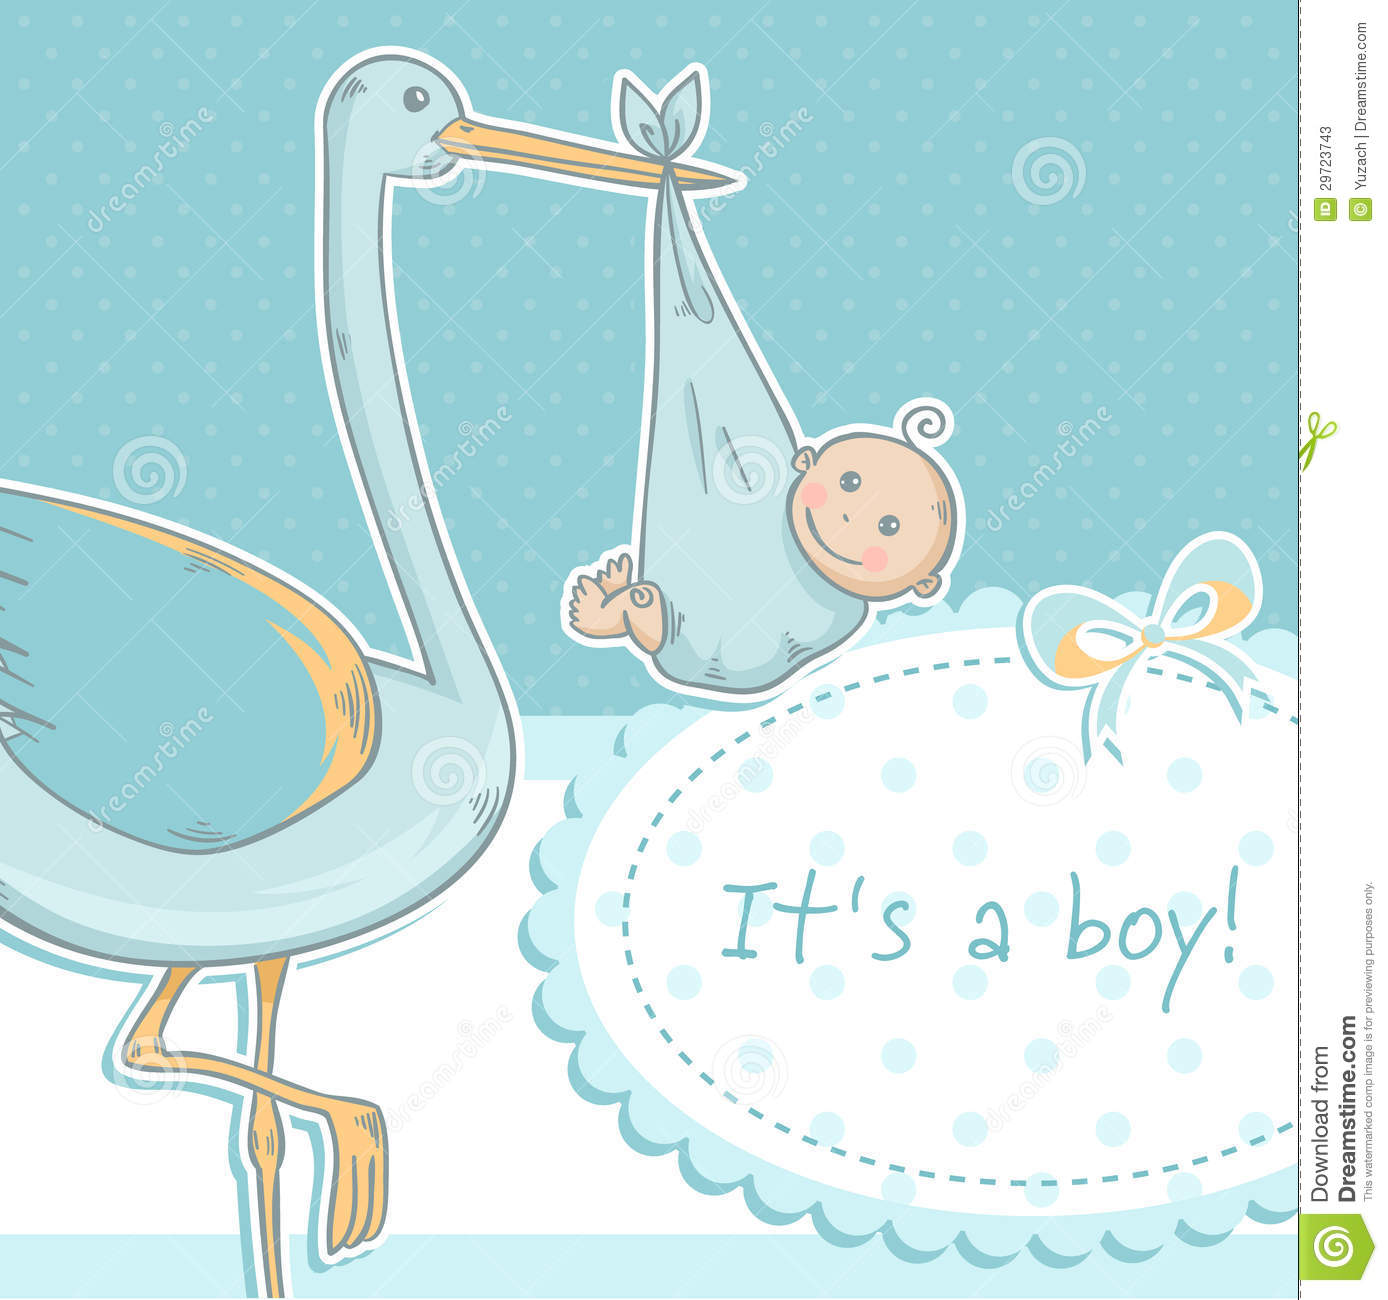 Cute Baby Girl Announcement Card With Stork And Ch Photos – Stork Birth Announcement